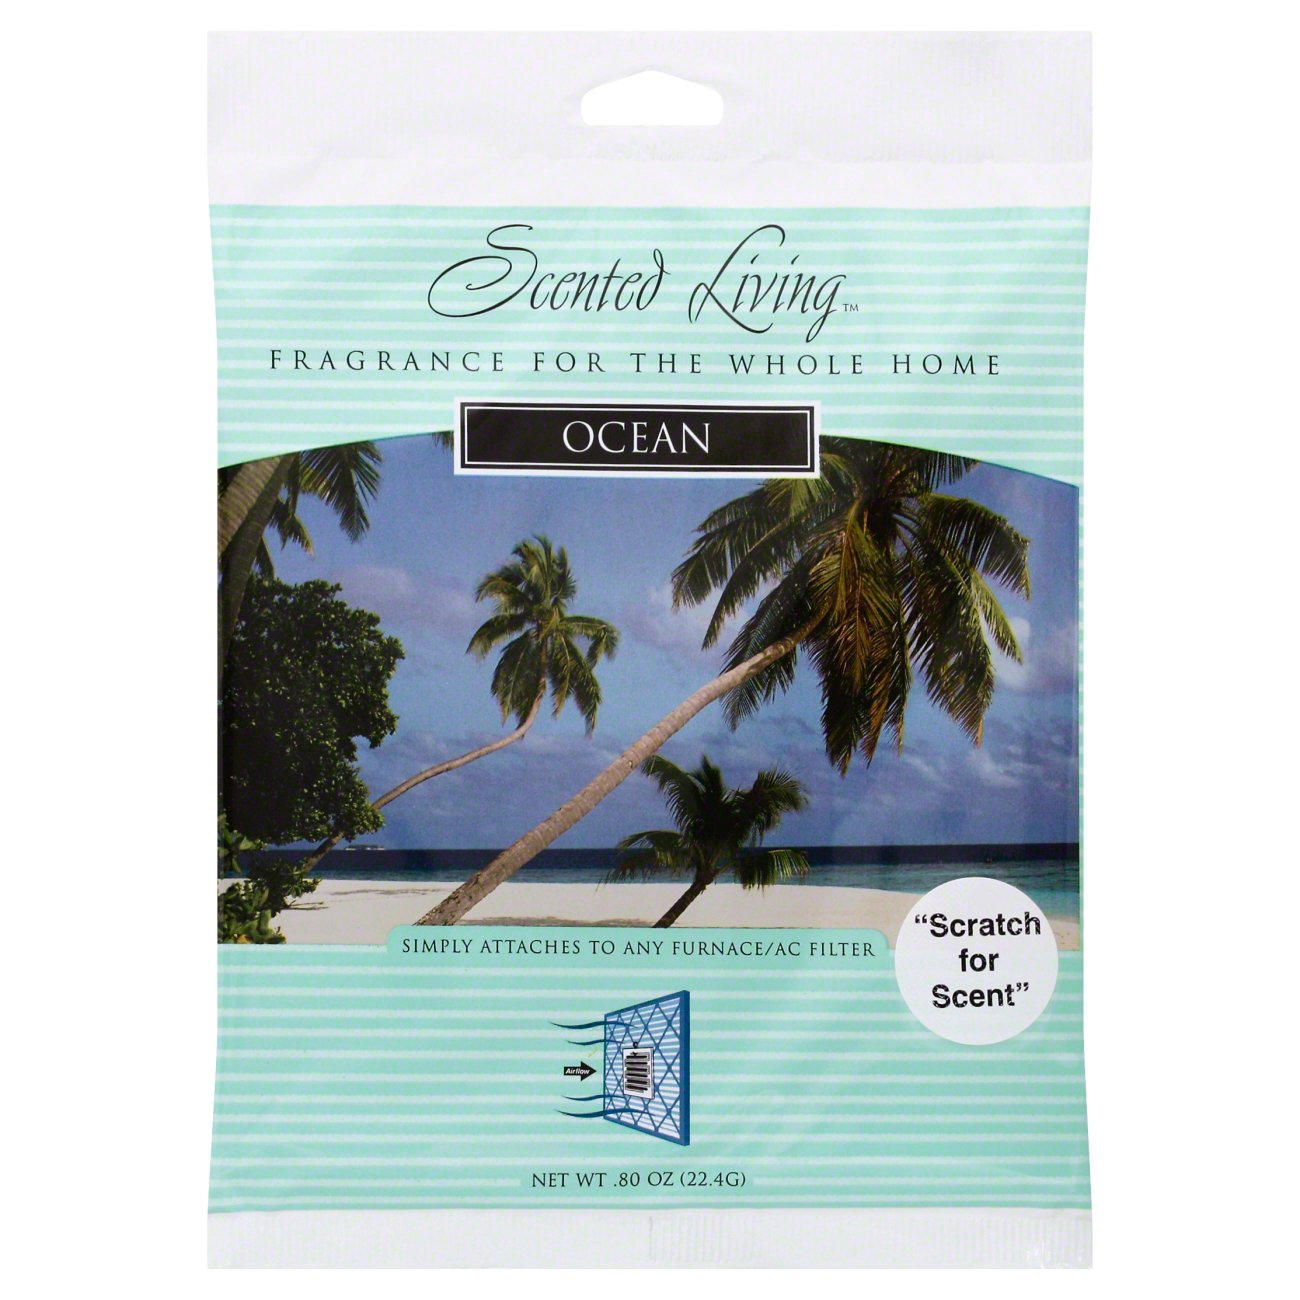 Scented Living Filter Fragrance Ocean Shop Air Fresheners At H E B